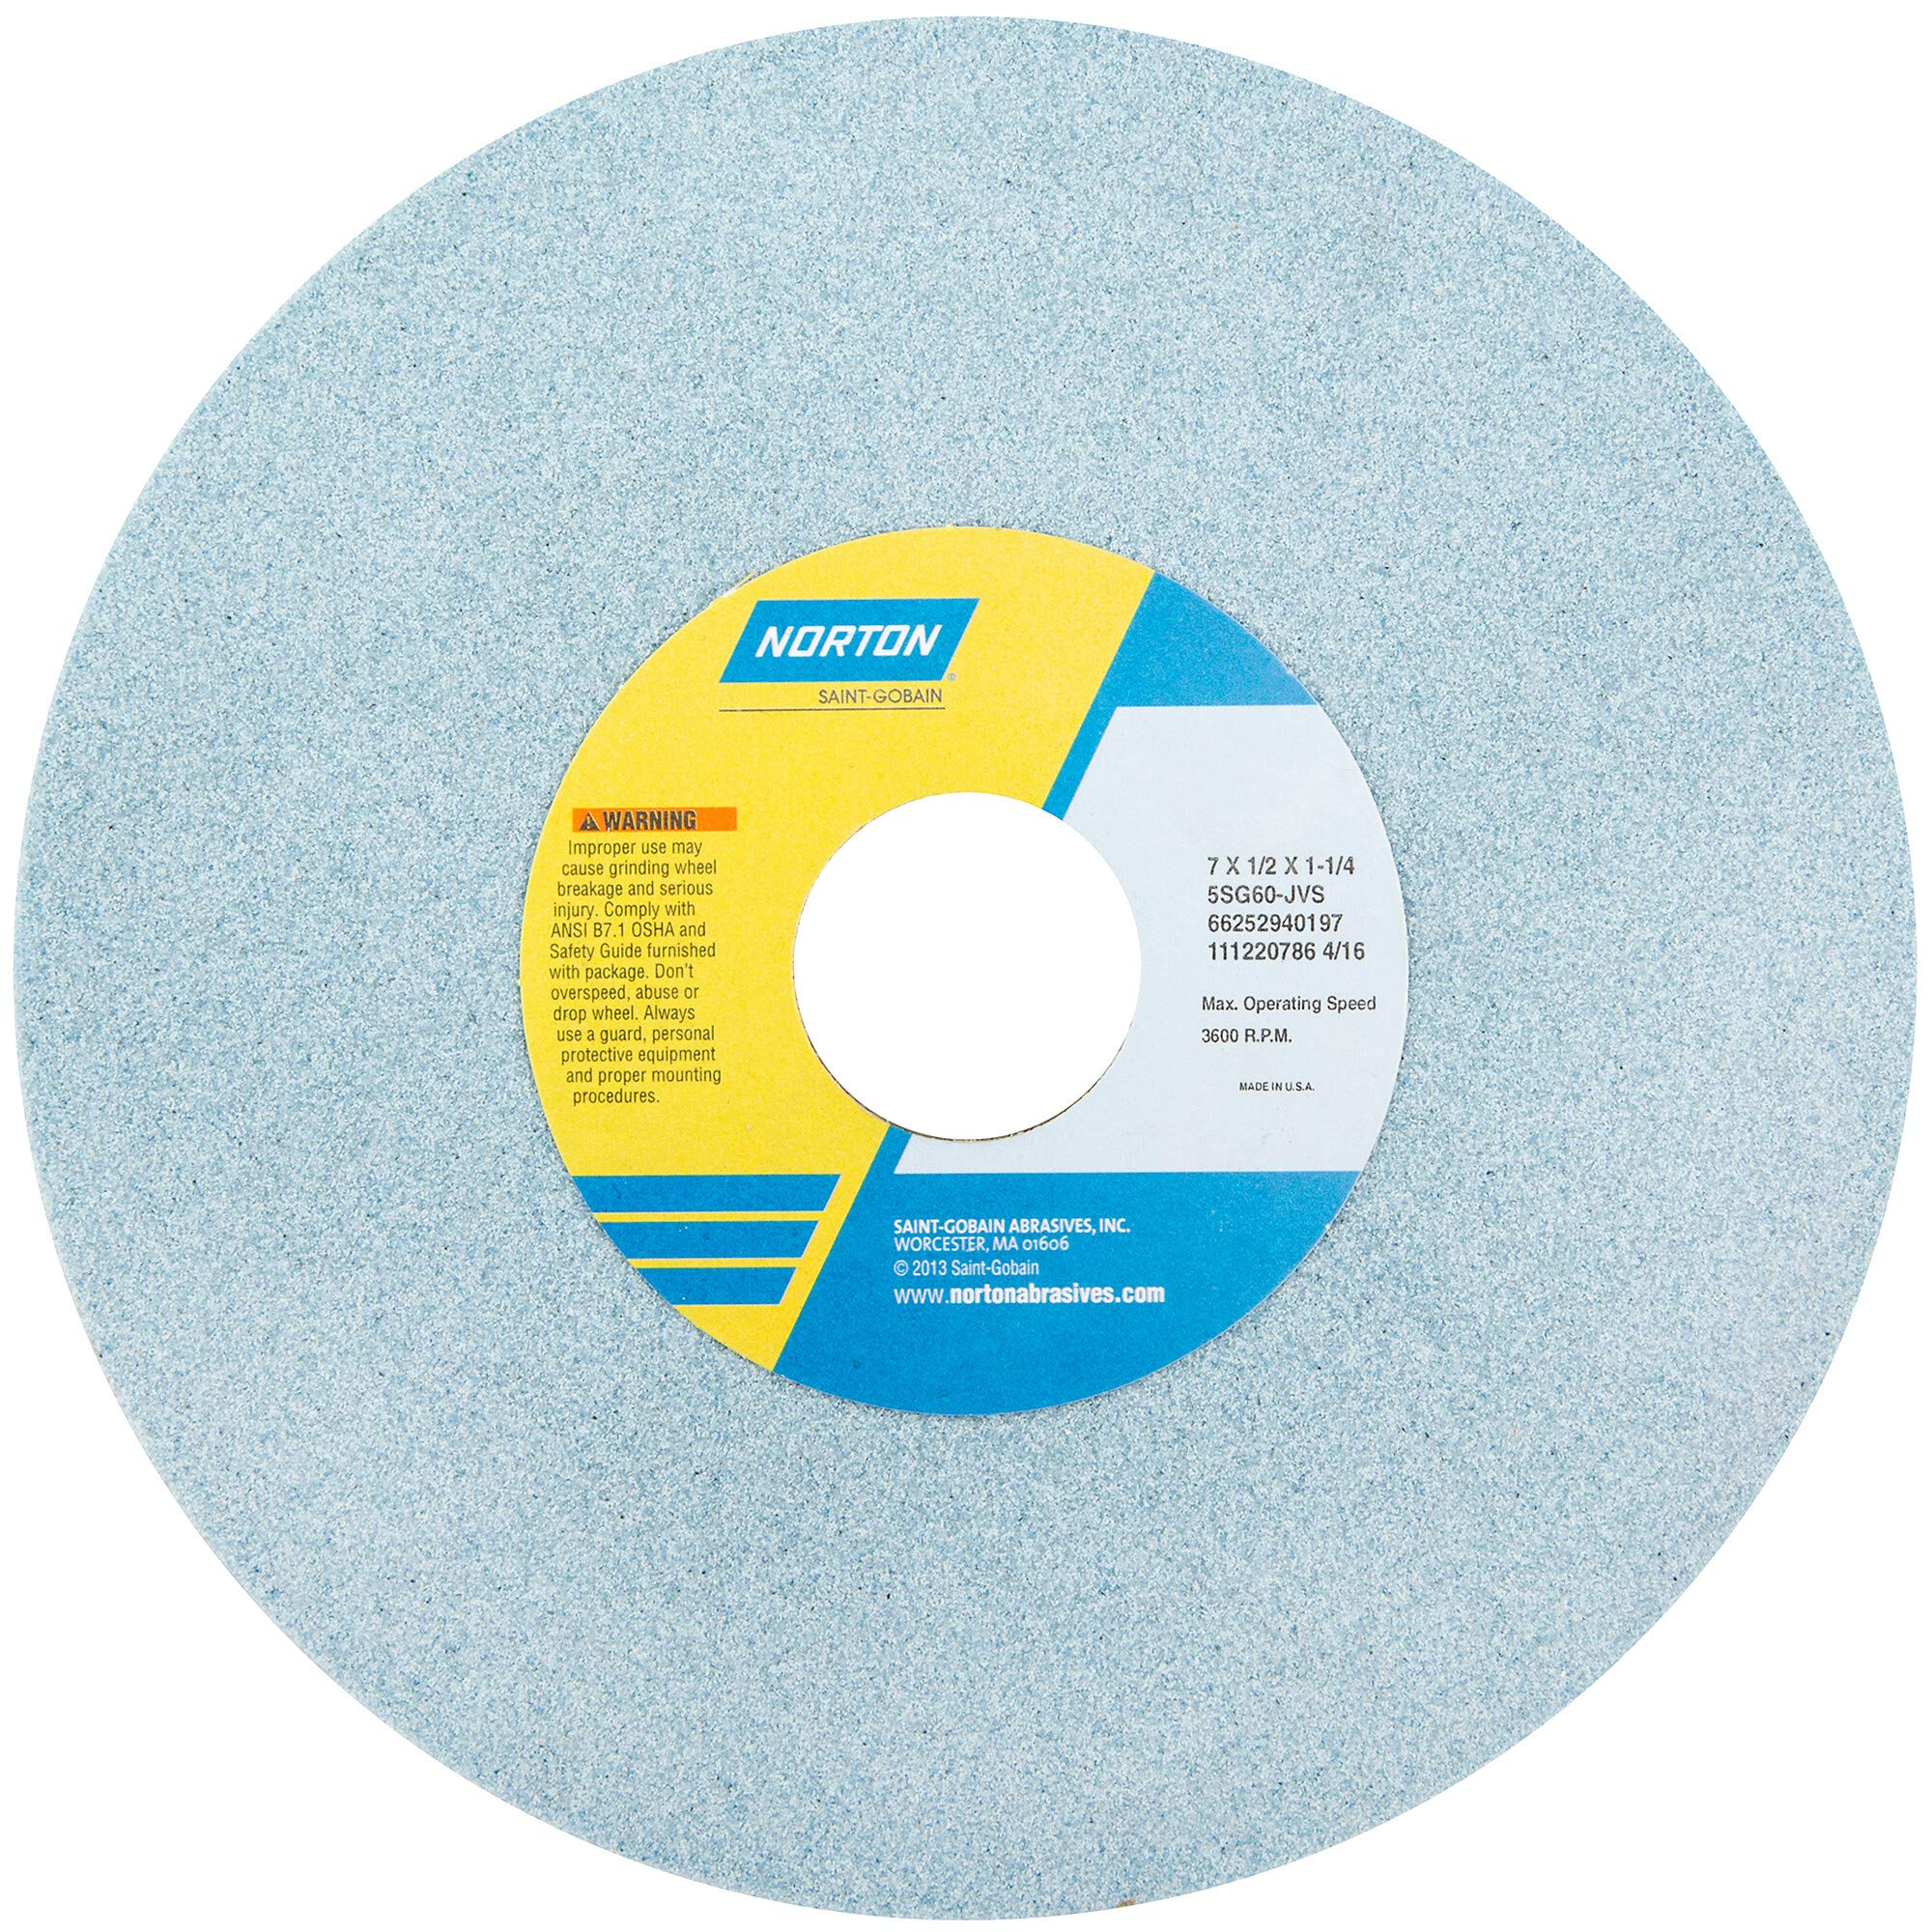 Norton 5SG60-JVS Type 01 Vitrified Straight Toolroom Grinding Wheel, Ceramic Alumina, 7'' Diameter x 1/2'' Width, 1-1/4'' Arbor, 60 Grit, Grade J, Blue (Pack of 1) by Norton Abrasives - St. Gobain